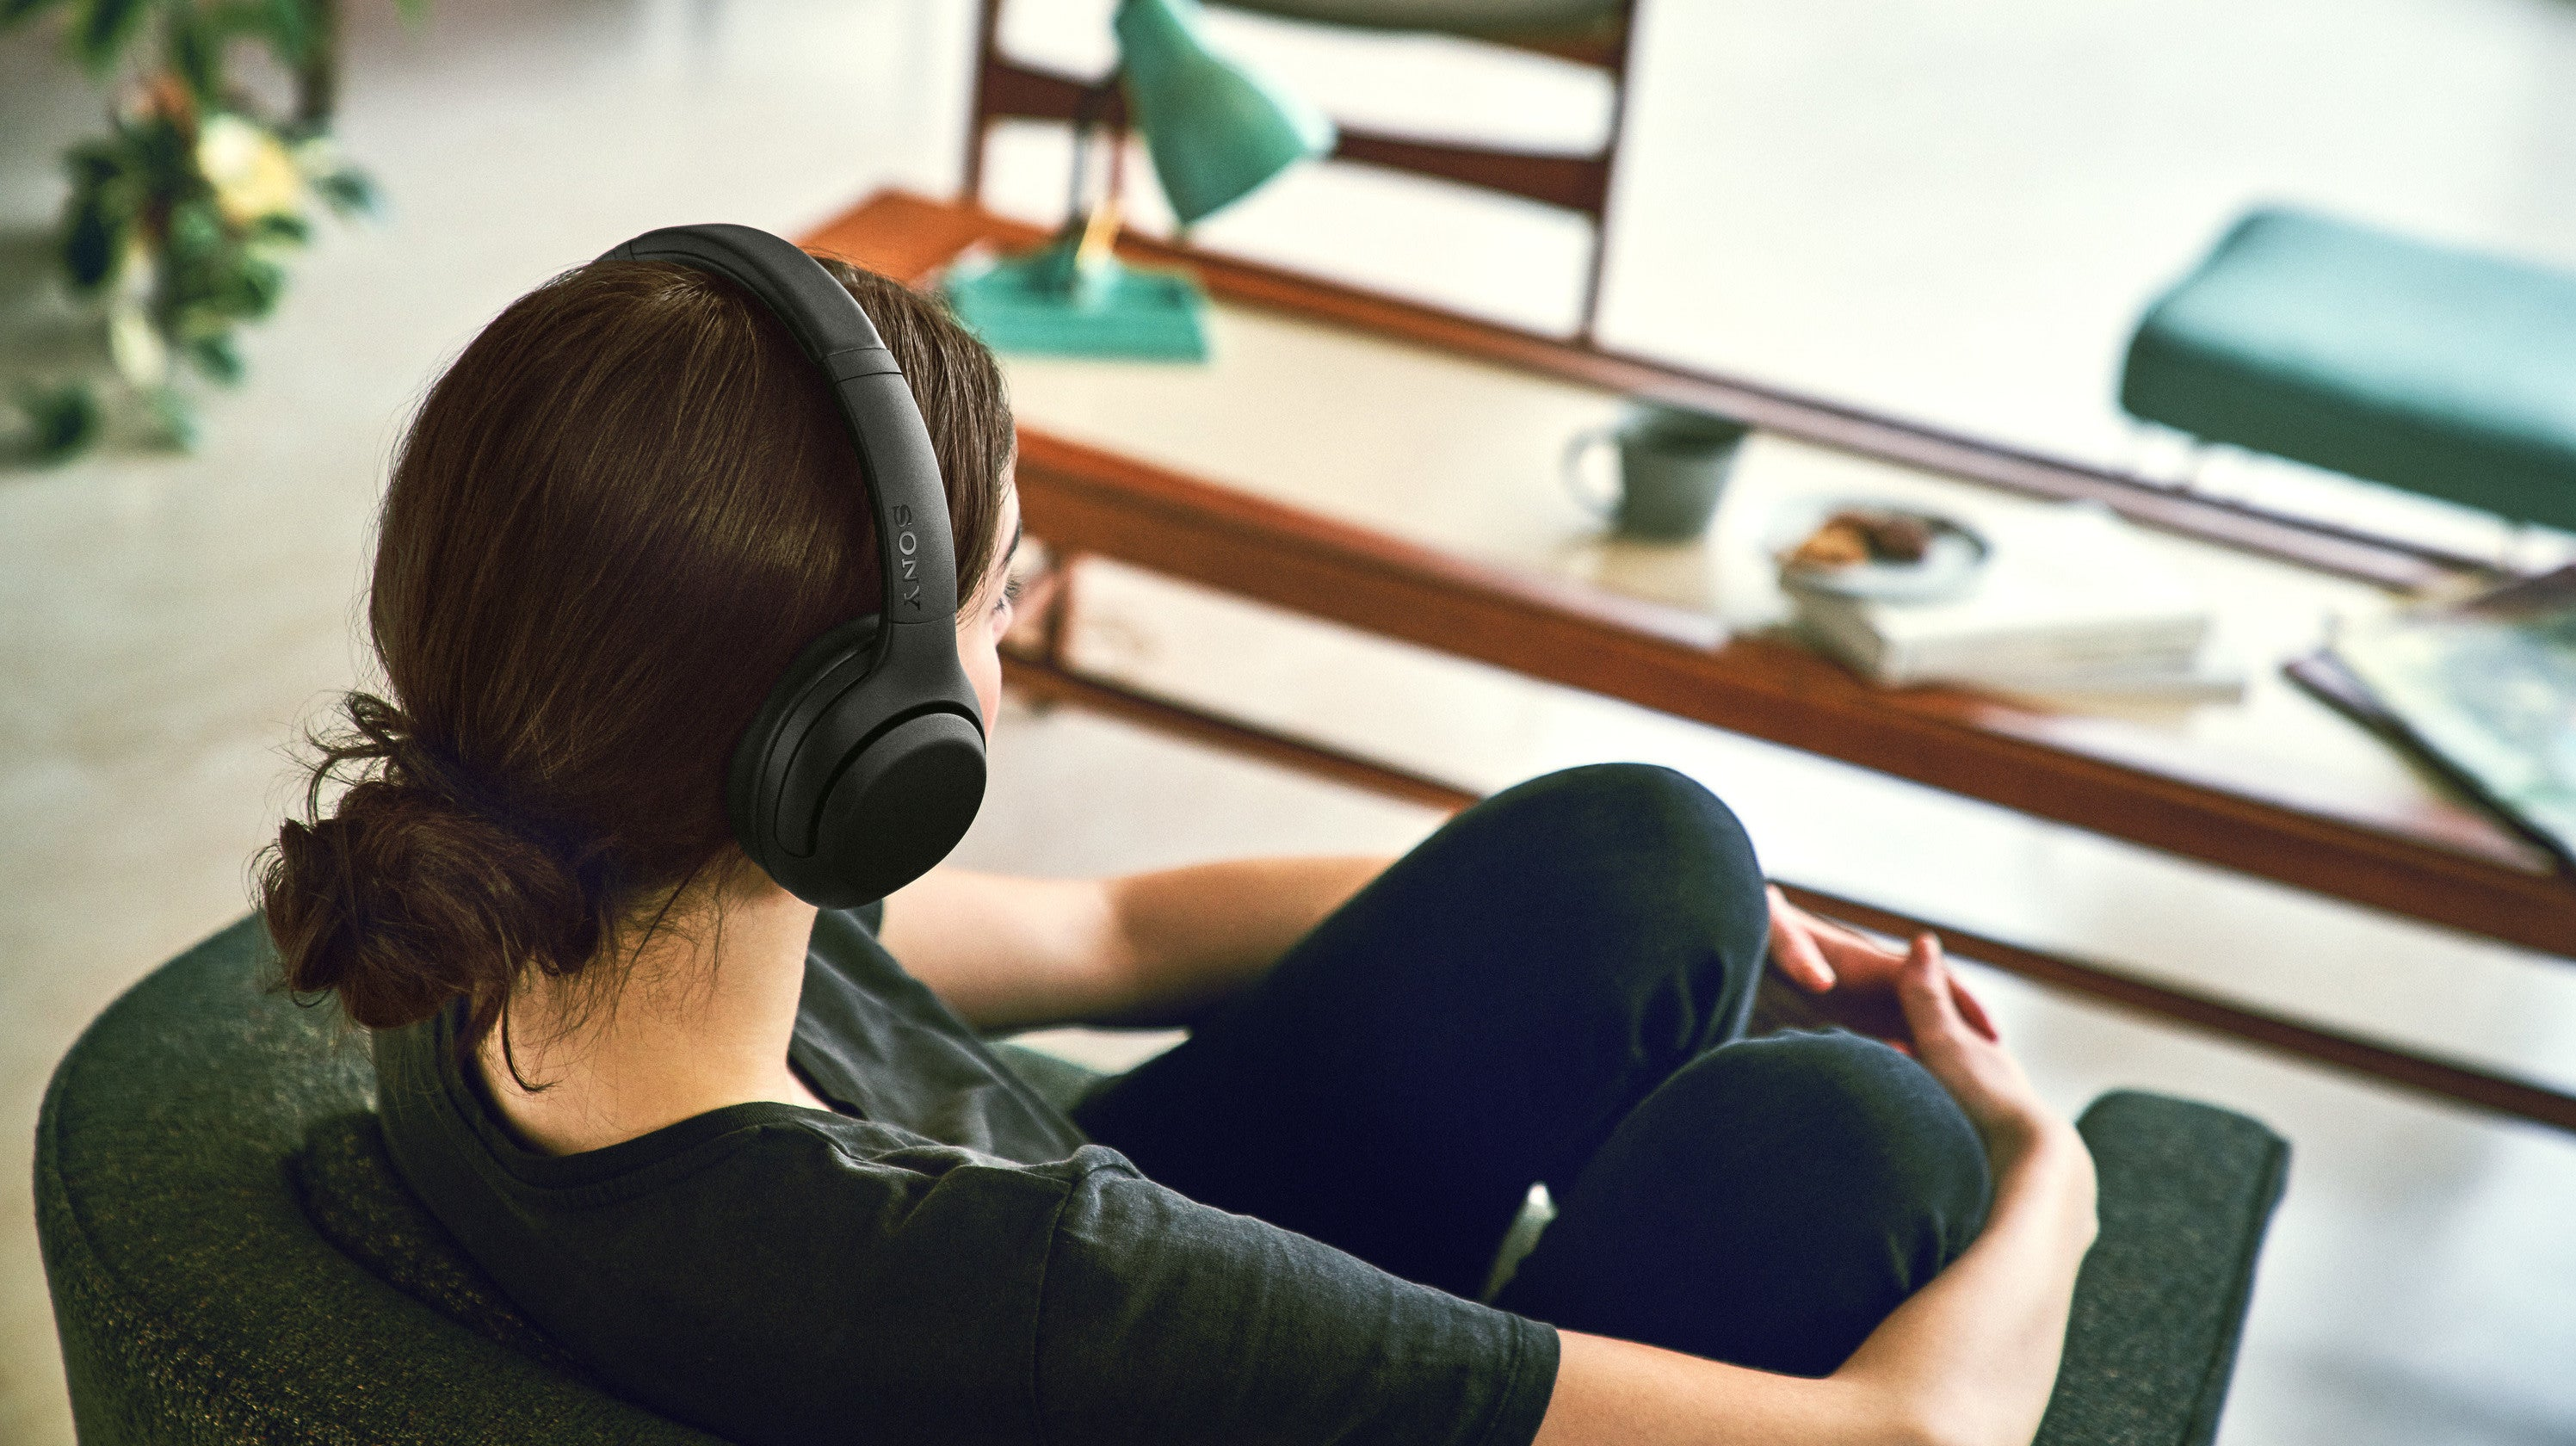 Whoa, Sony Made Cheaper Noise-Cancelling Headphones